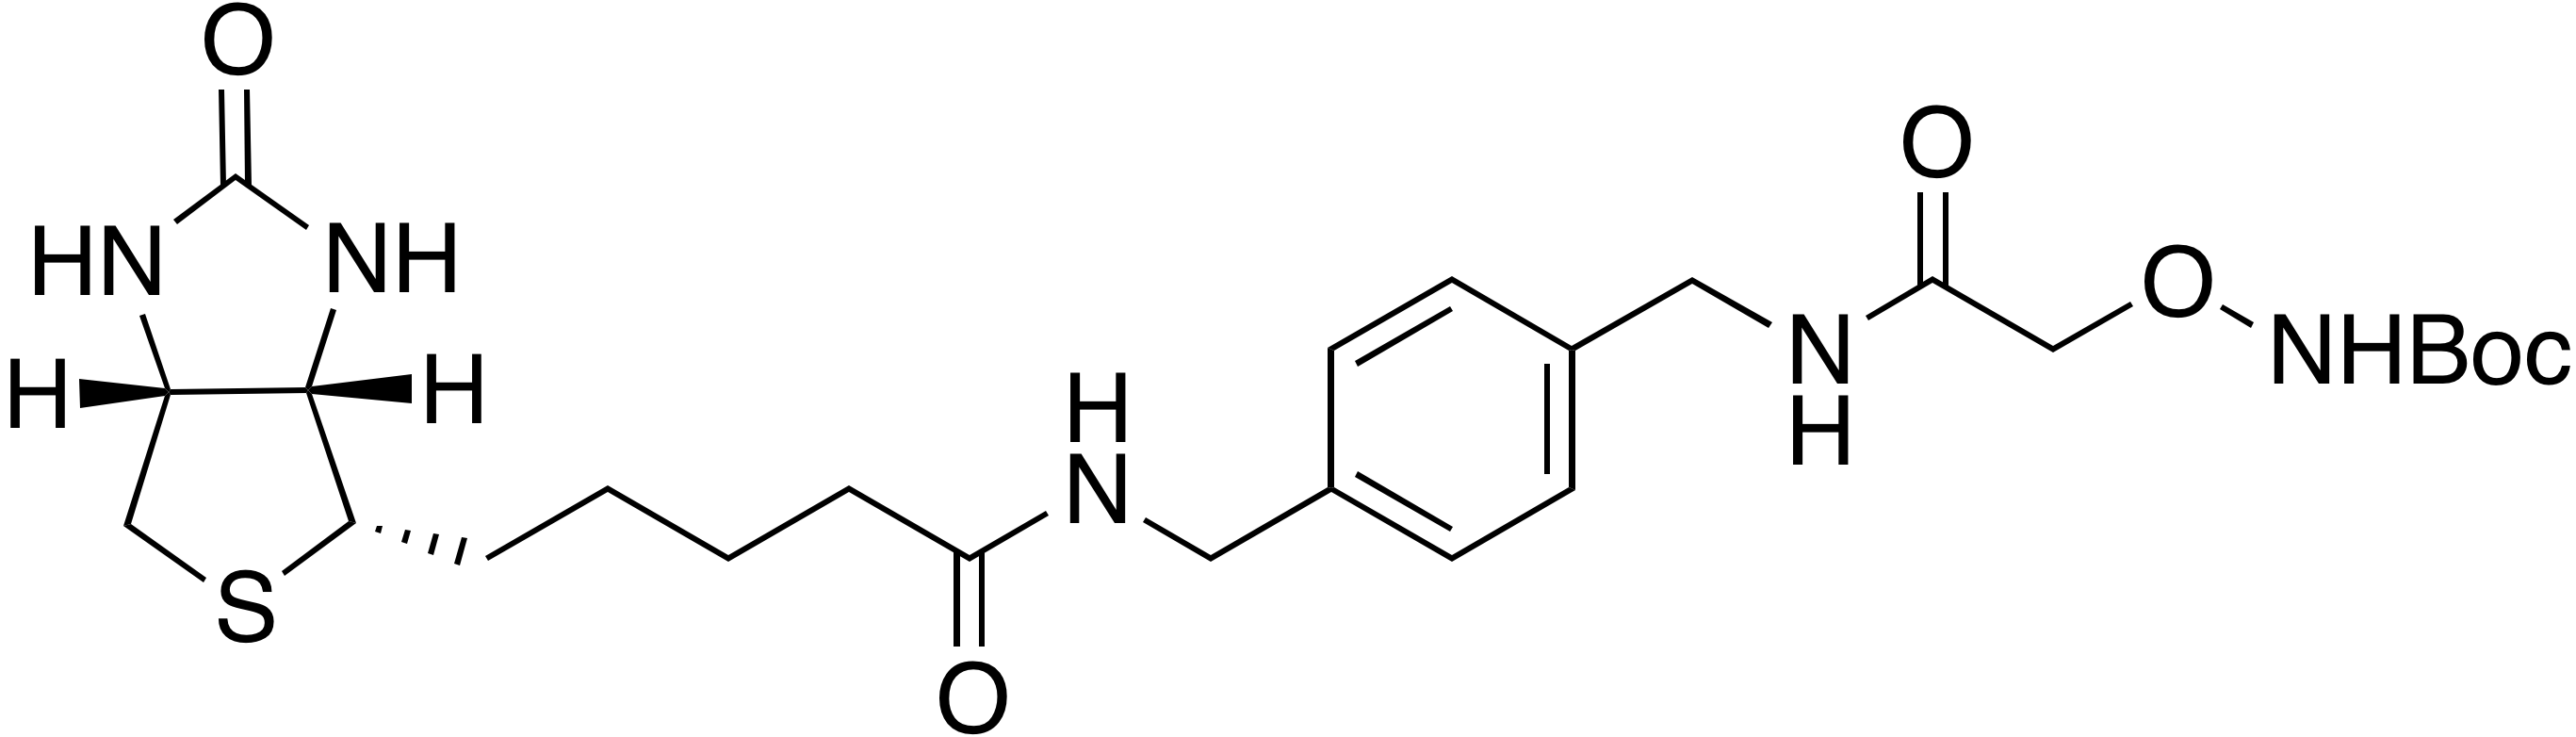 tert-Butyl 2-{[4-(biotinylaminomethyl)benzyl]amino}-2-oxoethoxycarbamate